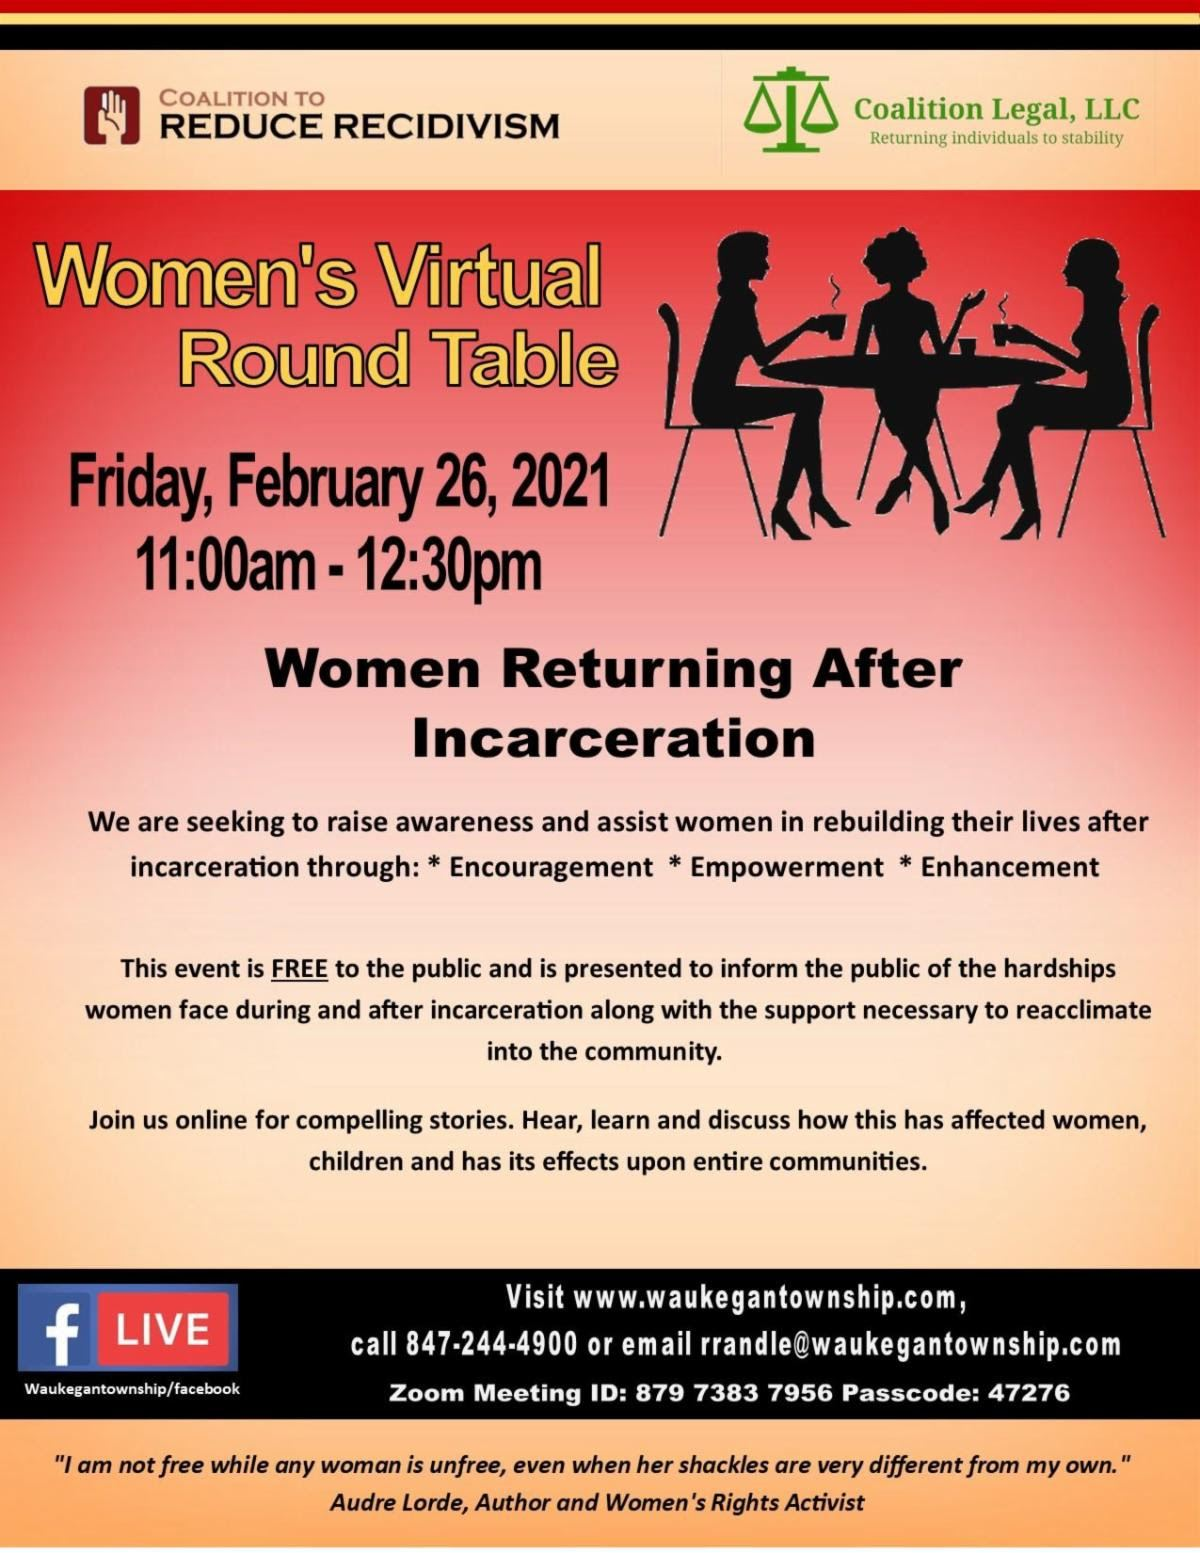 Women returning after incarceration